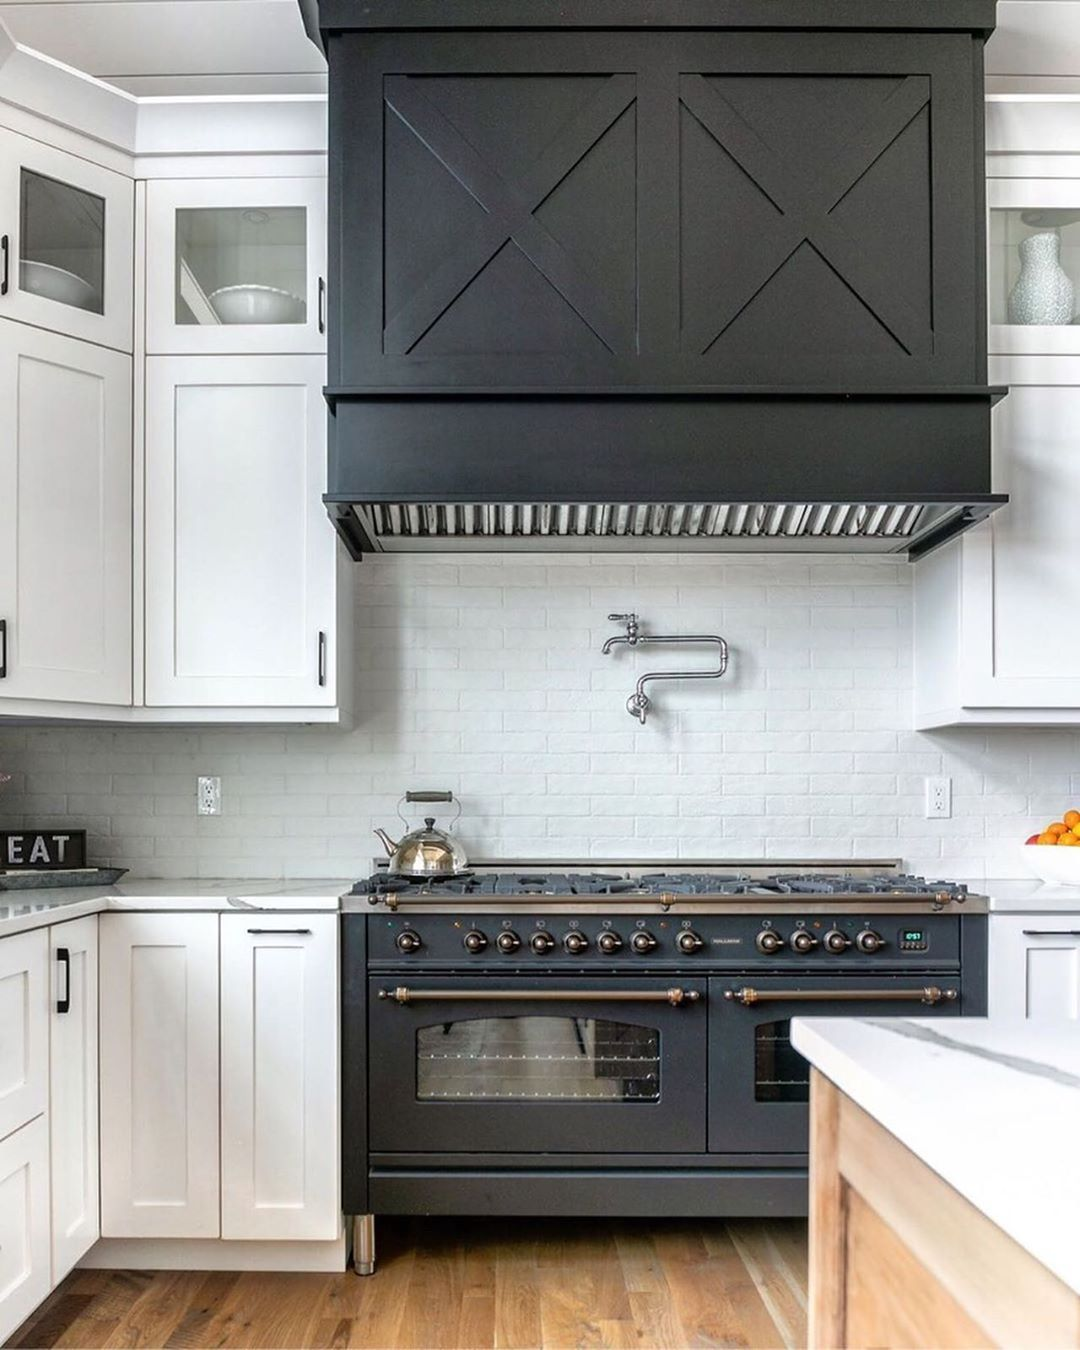 Loving This Farmhouse Kitchen Designed By Gowlerhomes Using Our Sequel Quartz In Color Statuario Farmhouse Kitchen Design Kitchen Design Farmhouse Kitchen